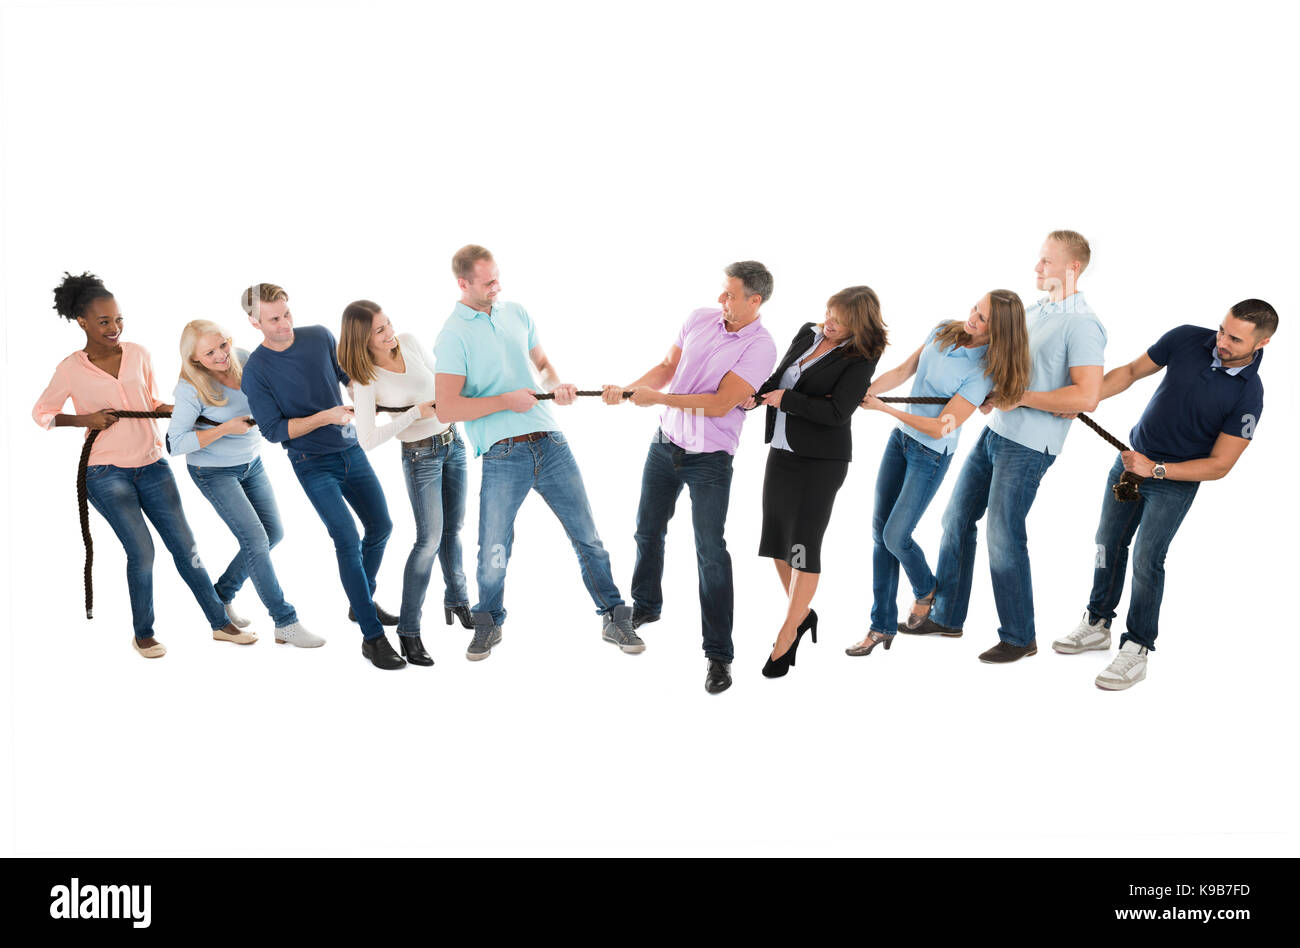 Full length of multiethnic creative business teams playing tug of war against white background - Stock Image